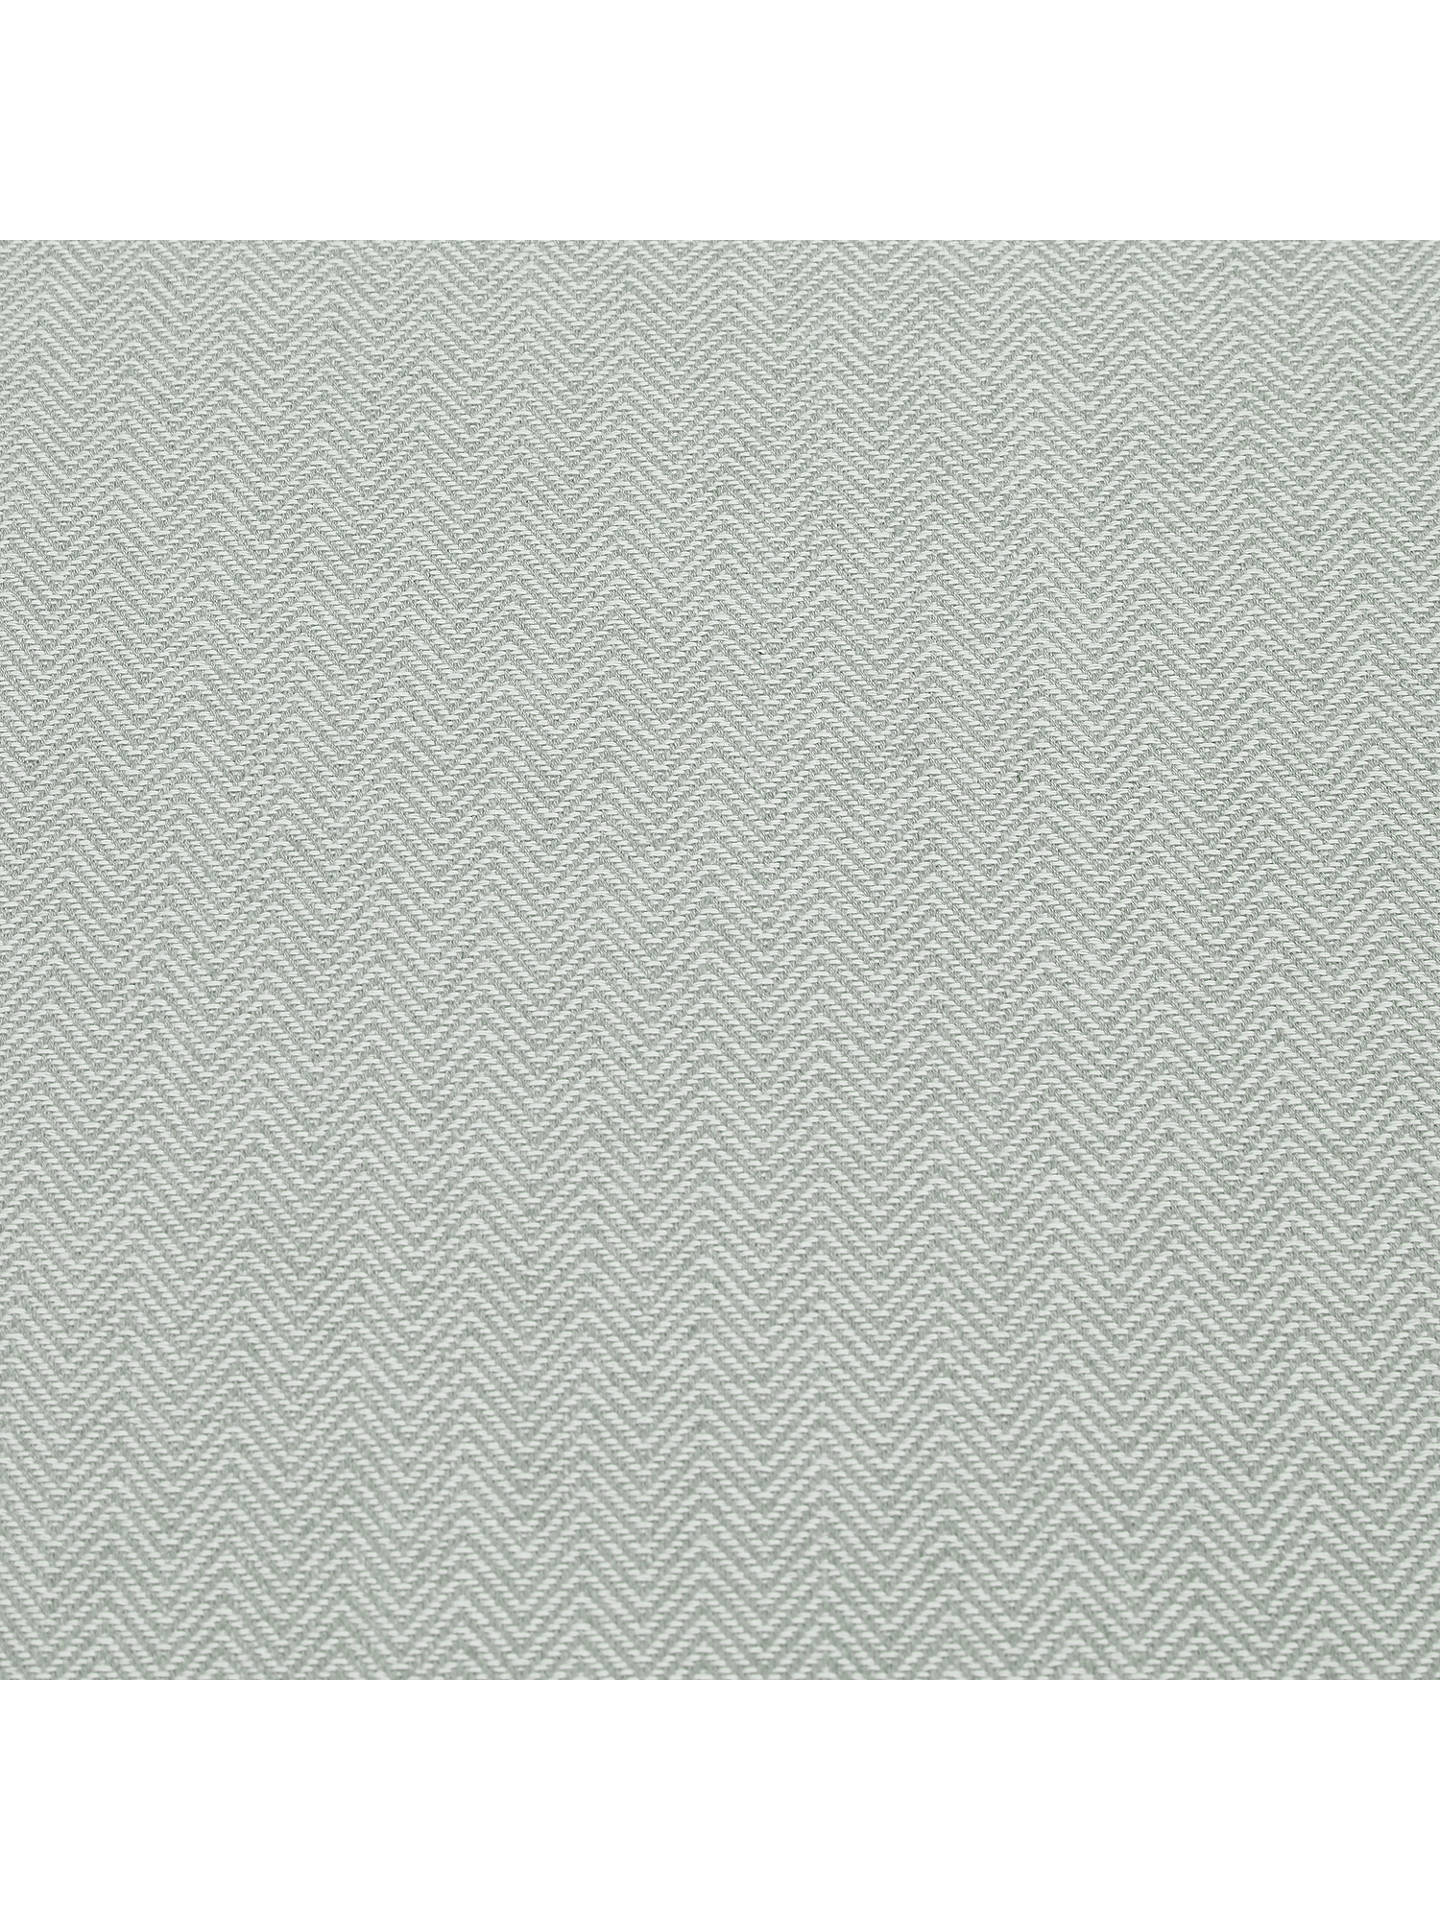 Buy Croft Collection Herringbone Furnishing Fabric, Nettle Green Online at johnlewis.com